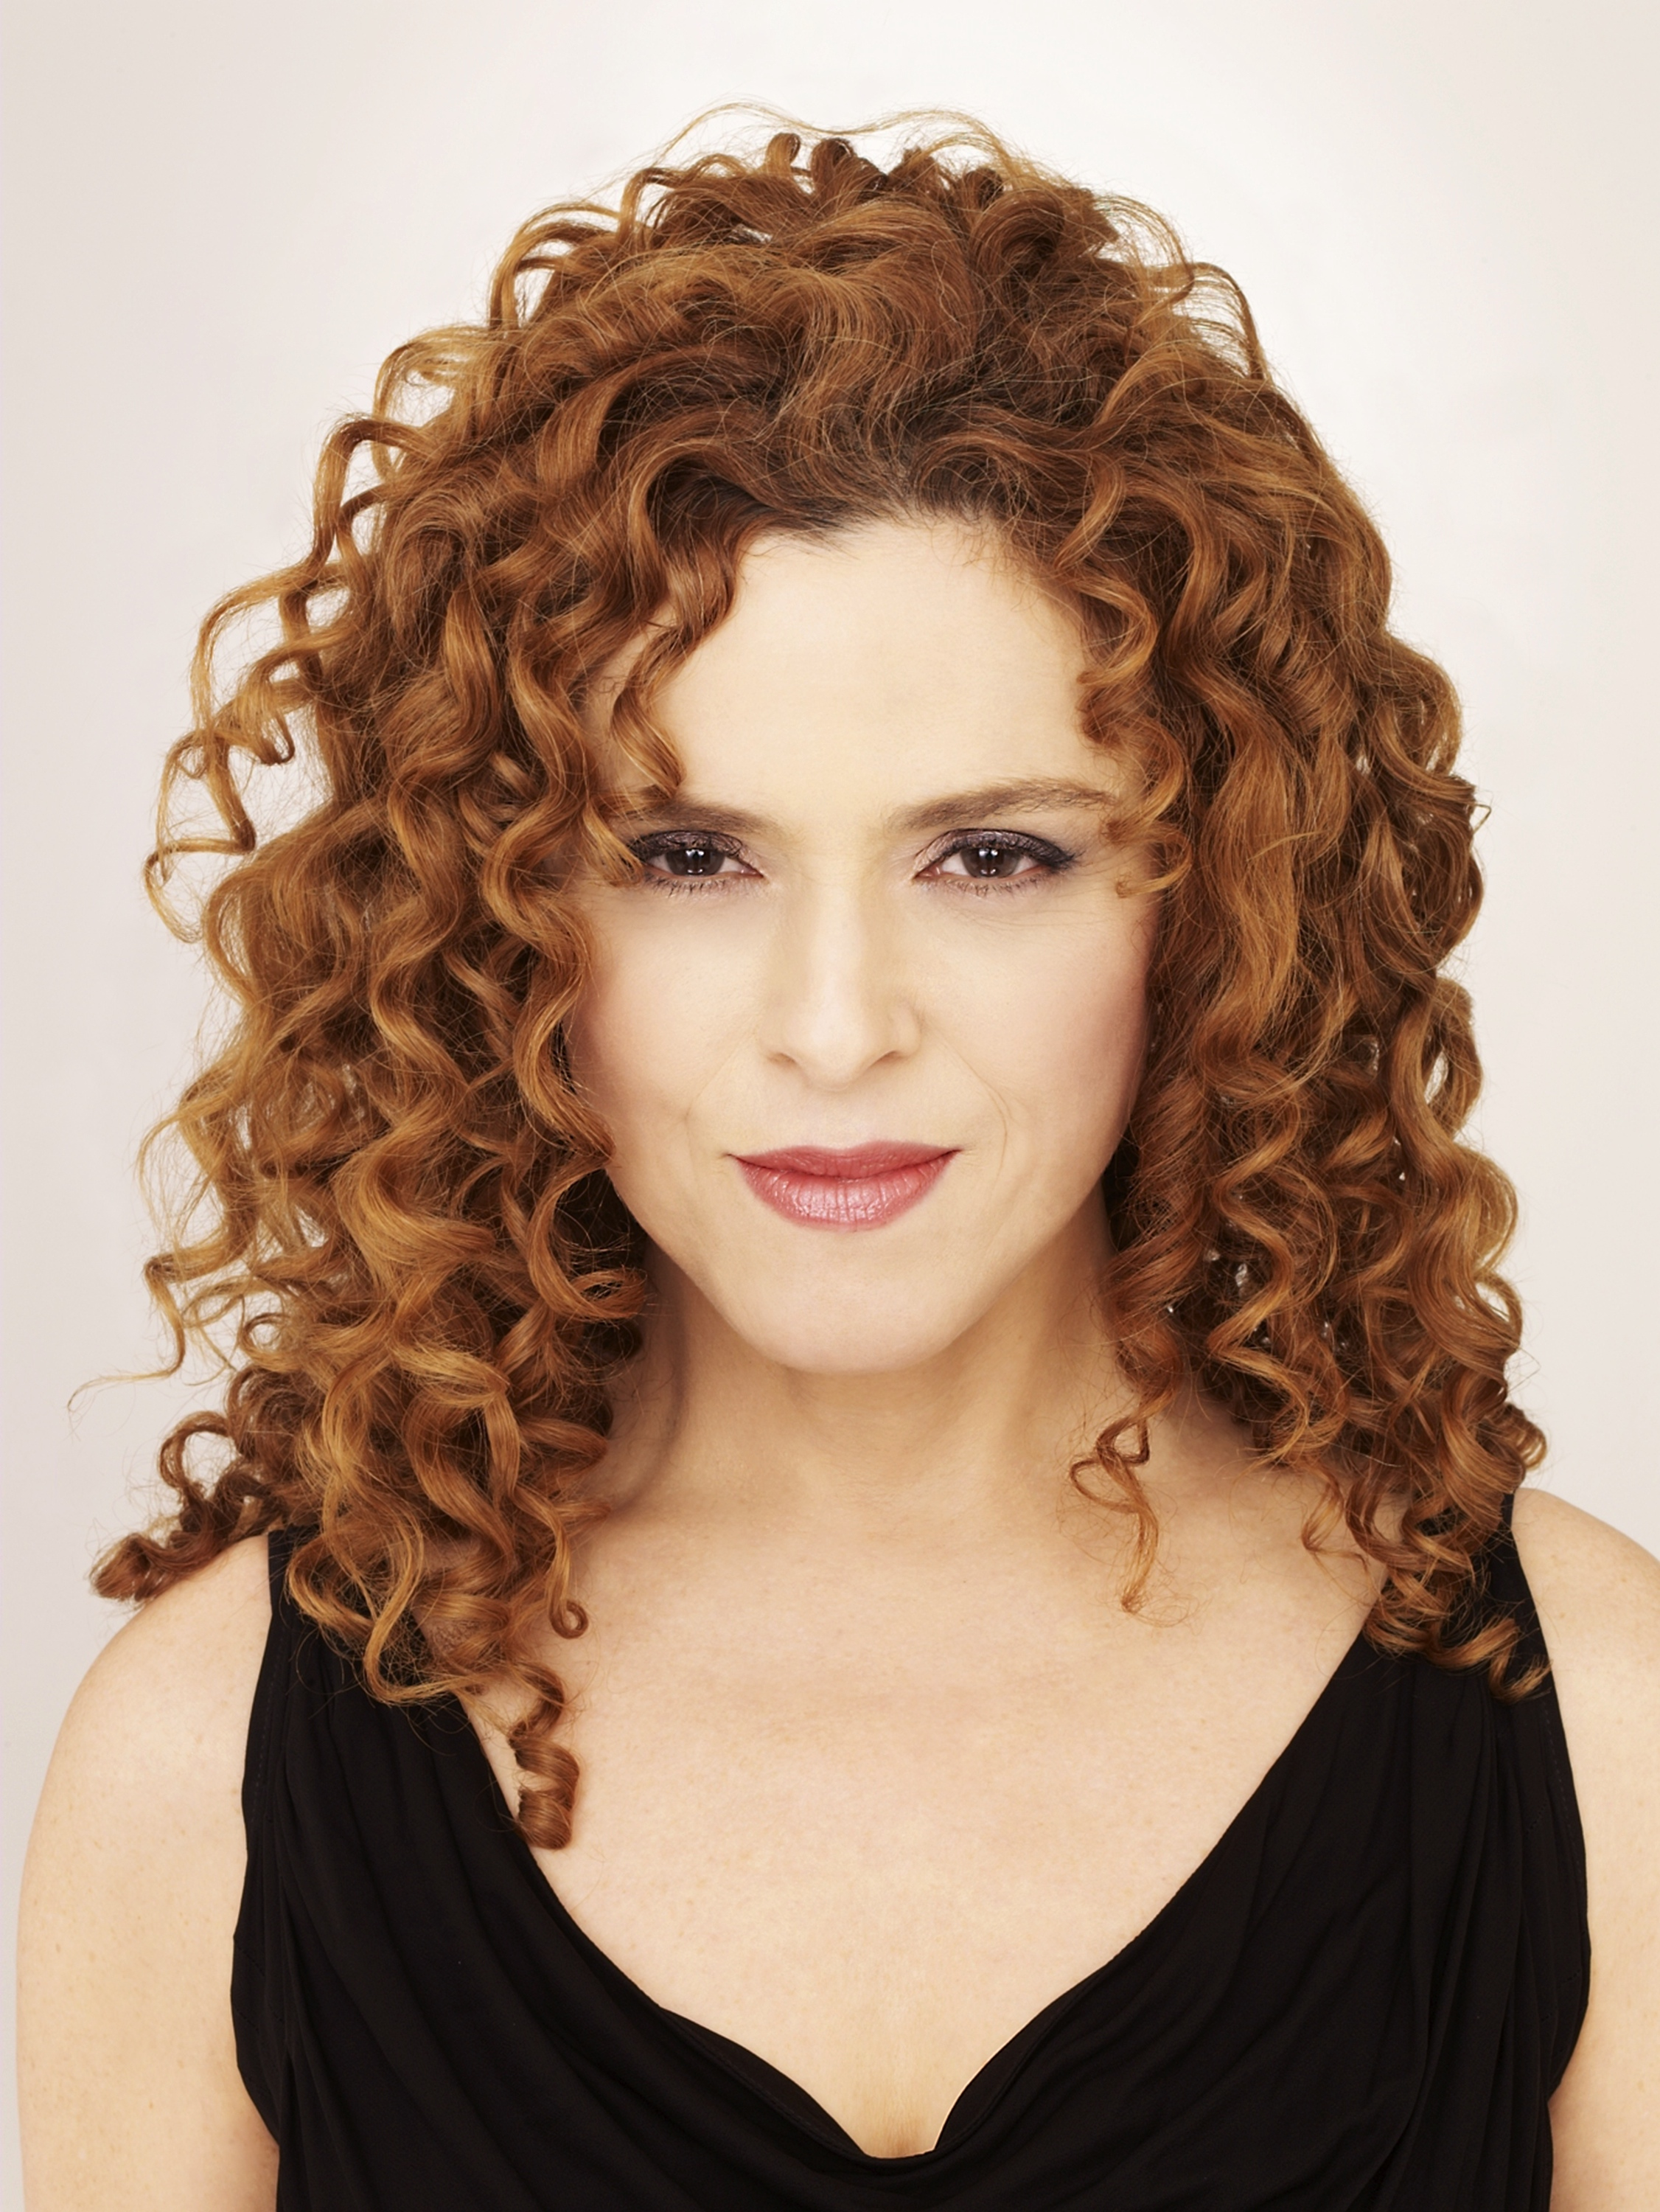 Bernadette_Peters